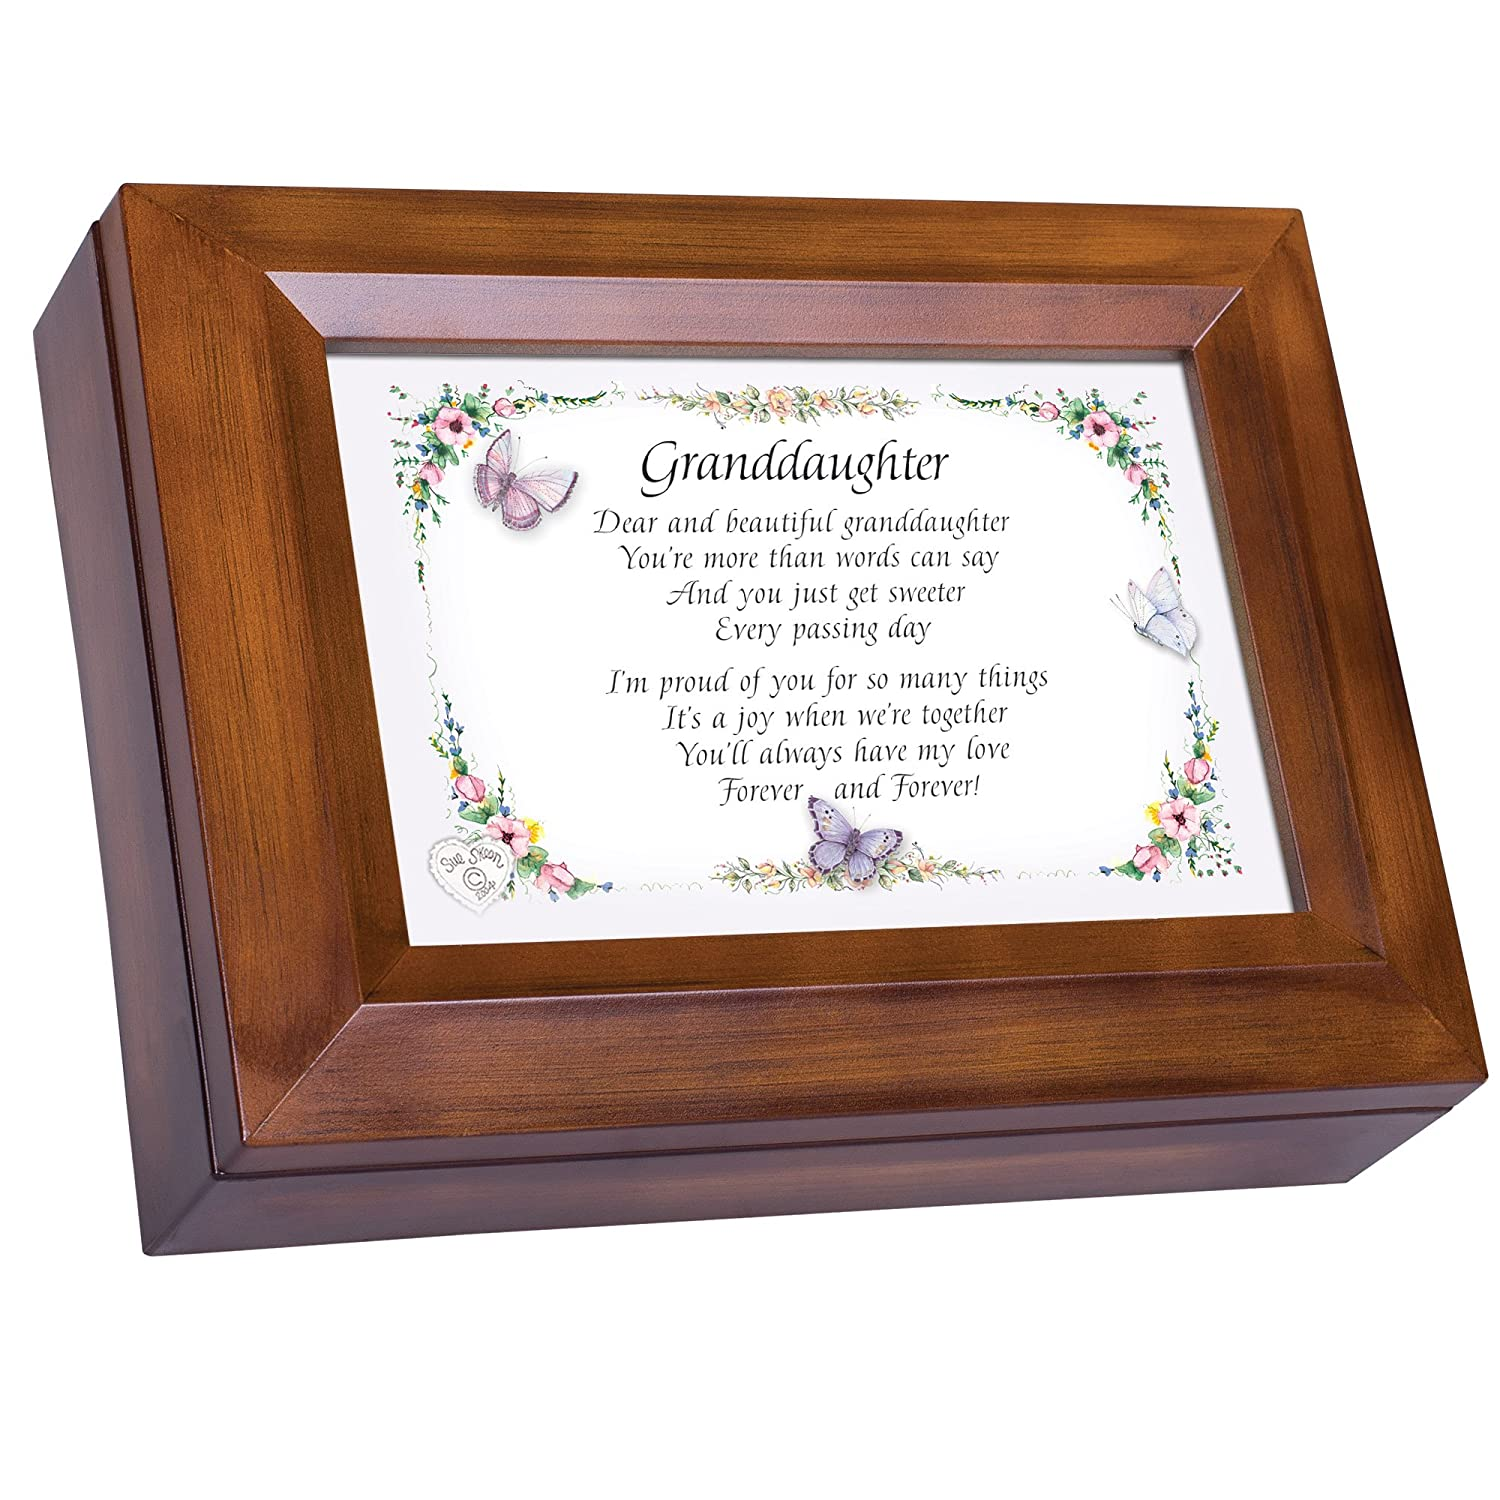 50%OFF Dear Box and Beautiful Granddaughter Dark Are Wood Finish Finish Jewellery Music Box - Plays Tune You Are My Sunshine B00P1QM8GW, 遠州屋酒店:d91cd48f --- arcego.dominiotemporario.com